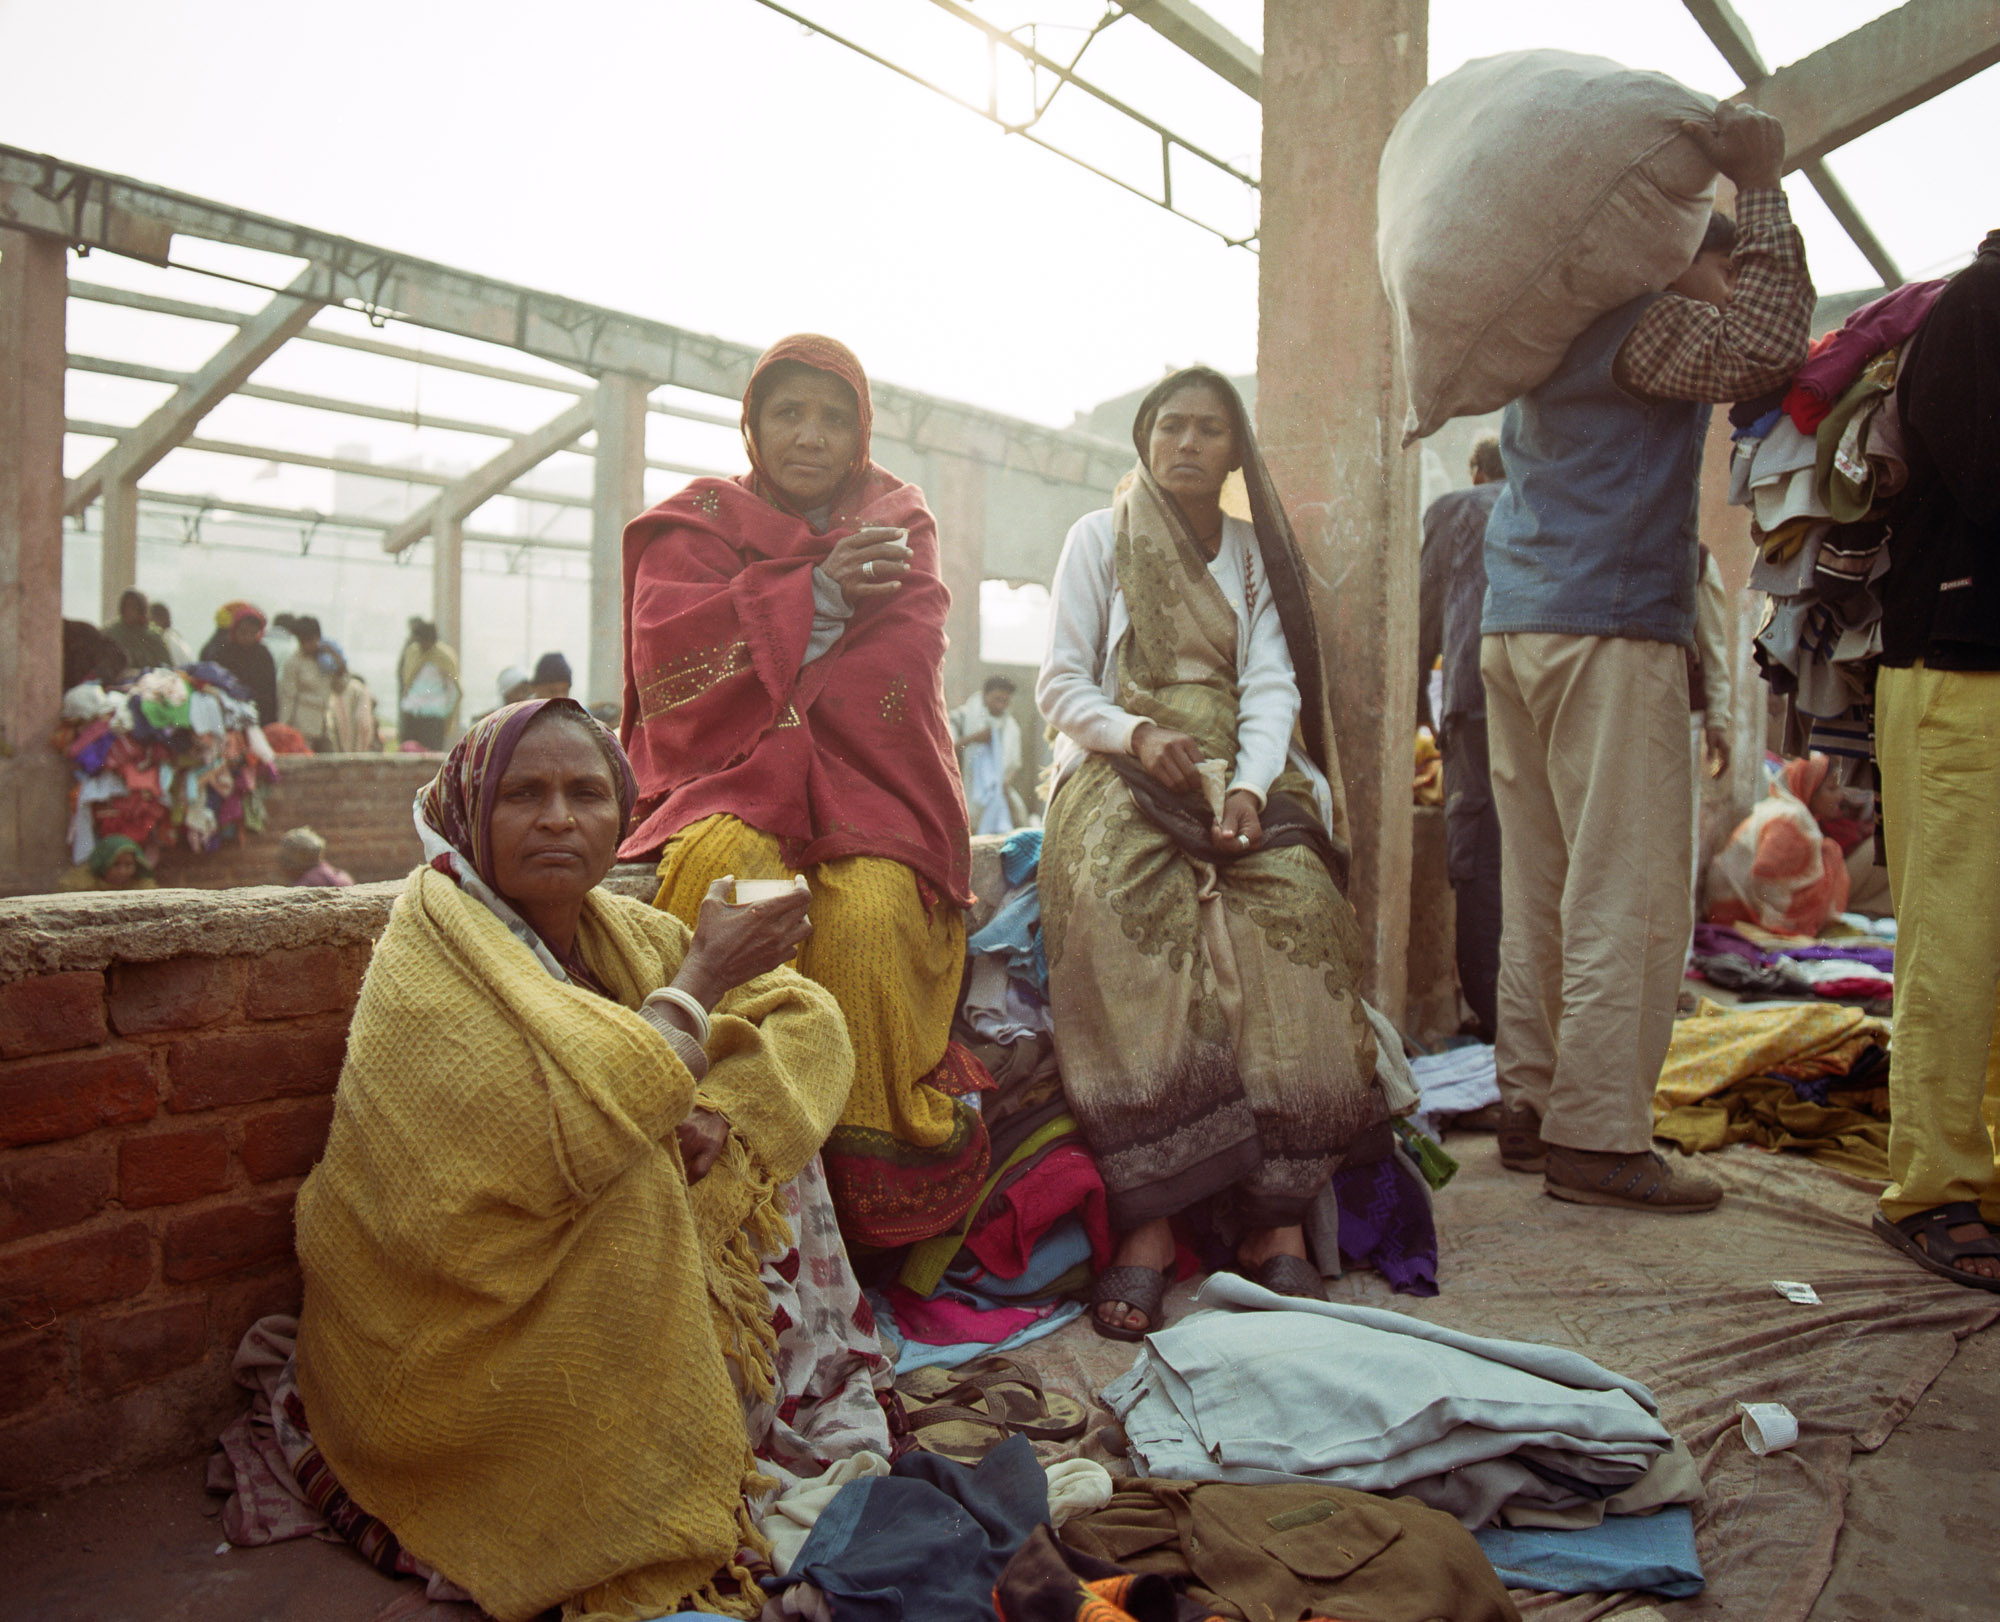 Women drinking chai on a December morning. Families often work together, traveling to their regular suburban patches to barter for clothes and selling them together at the market.